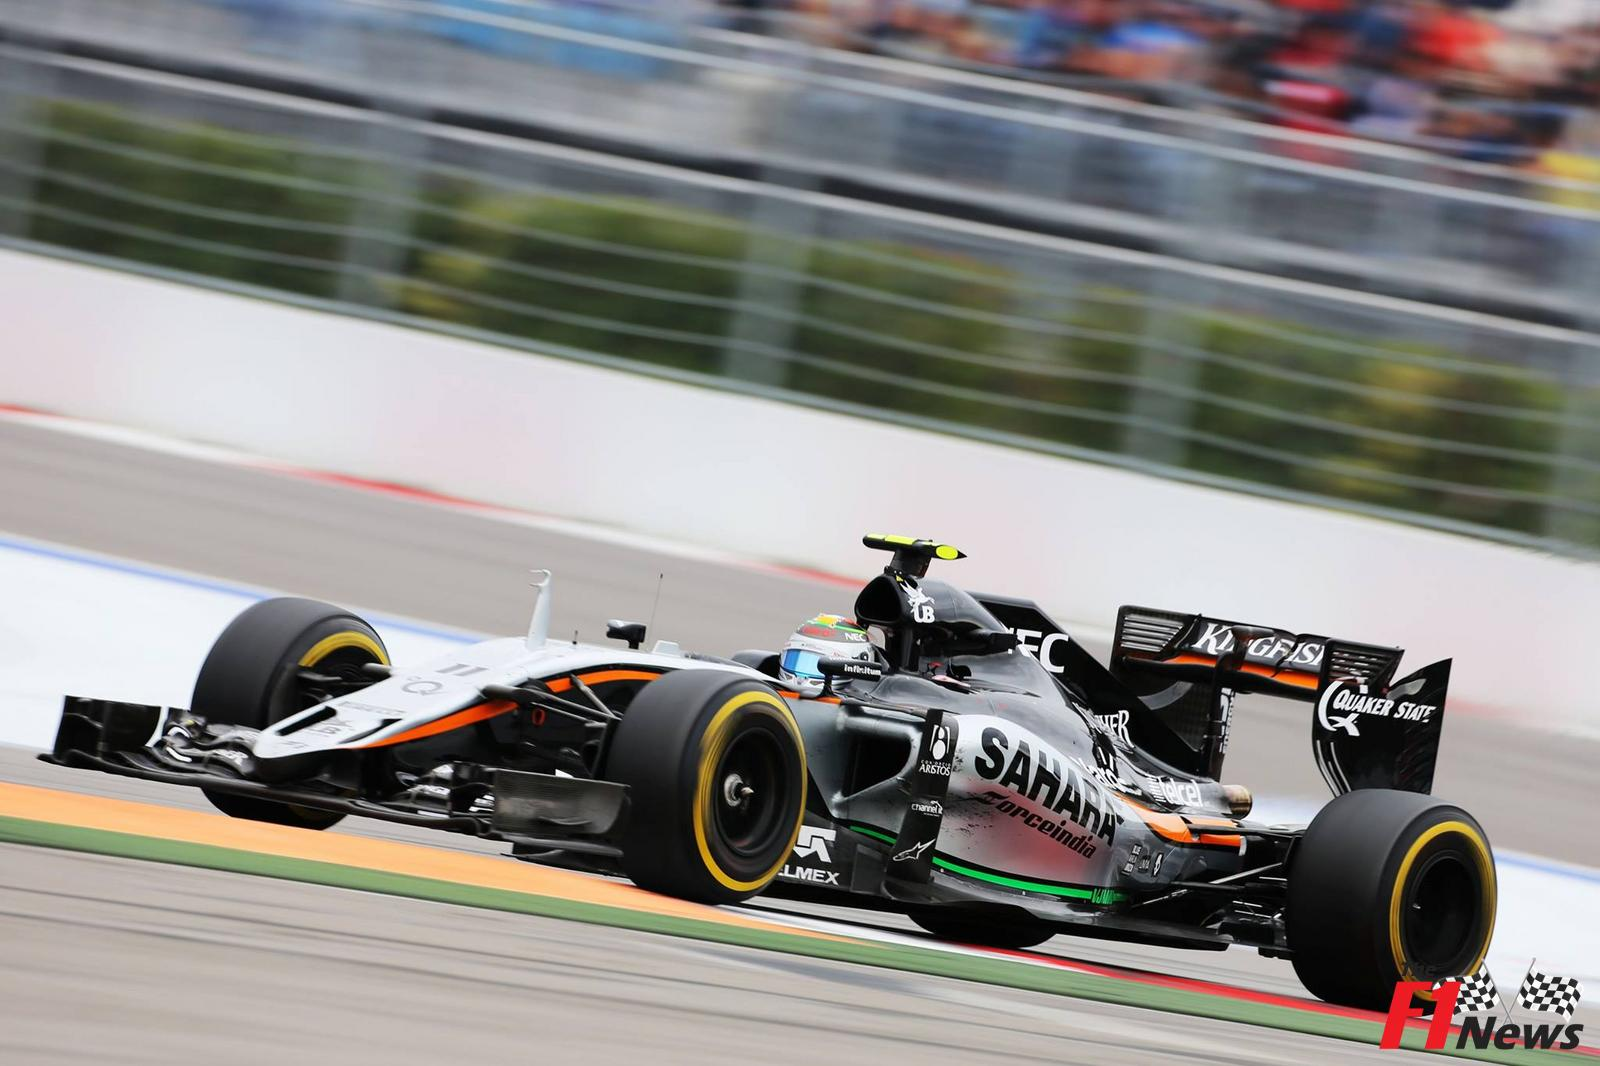 Force india archives the f1 news